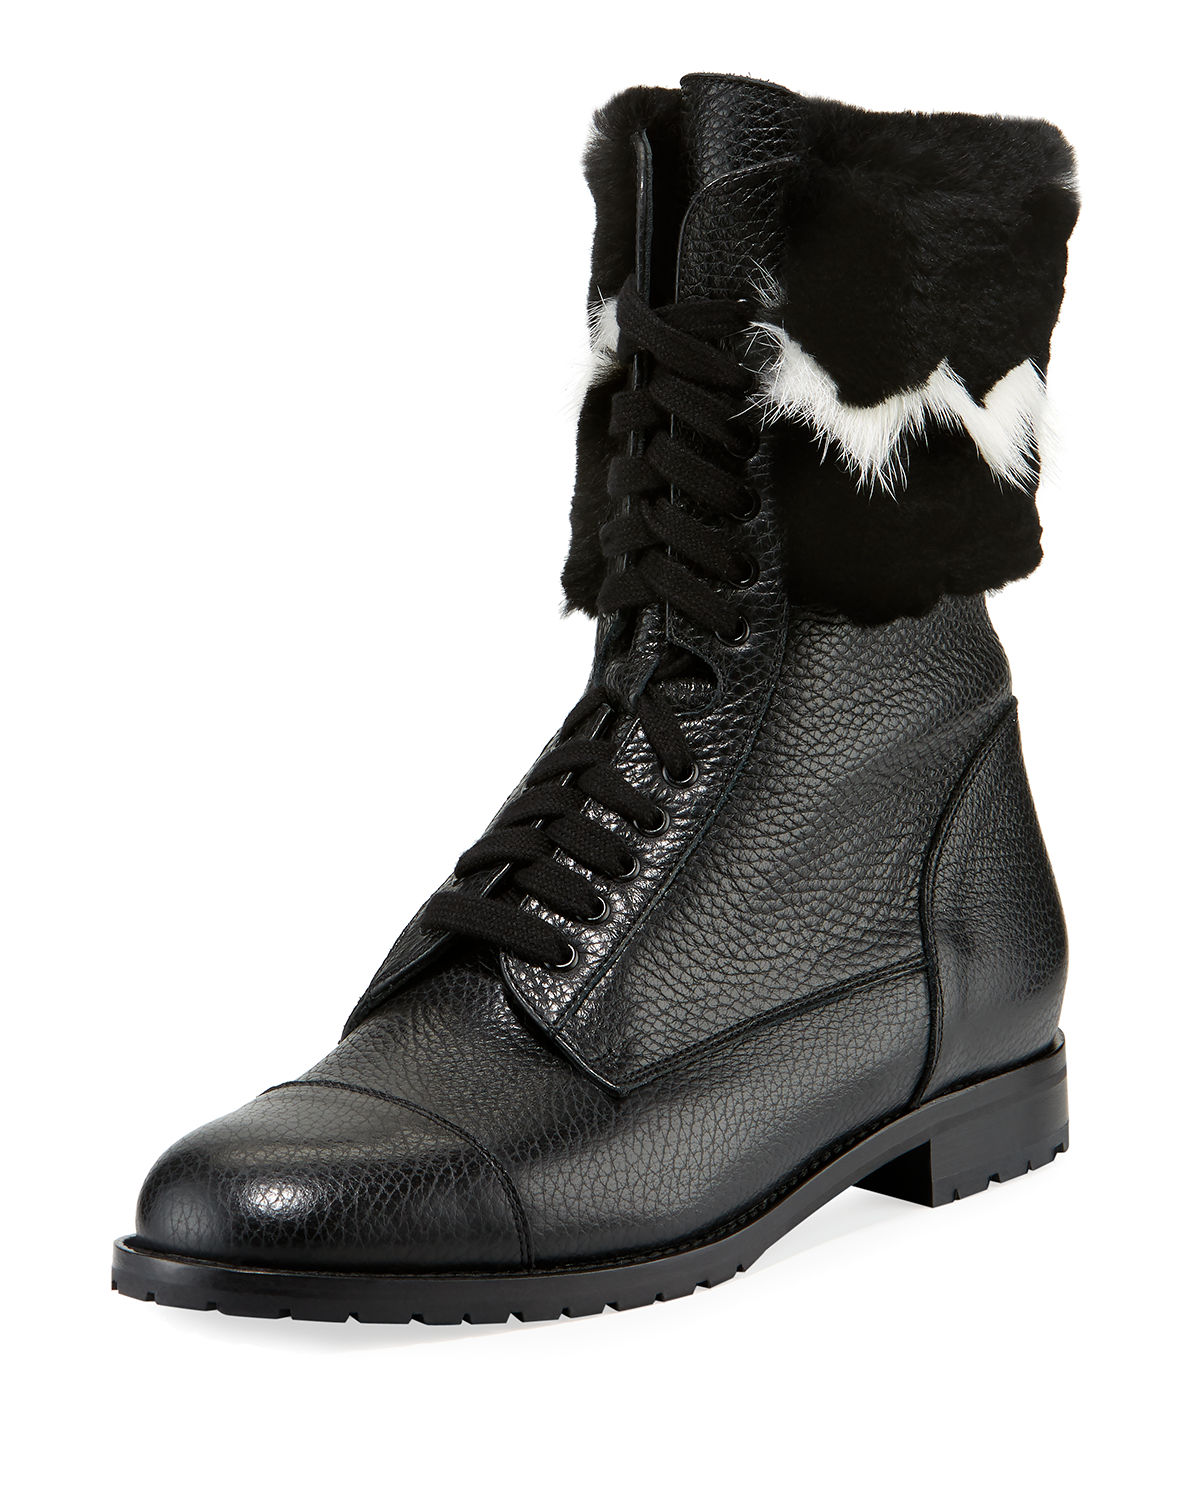 Camp Chafur High-Top Boots